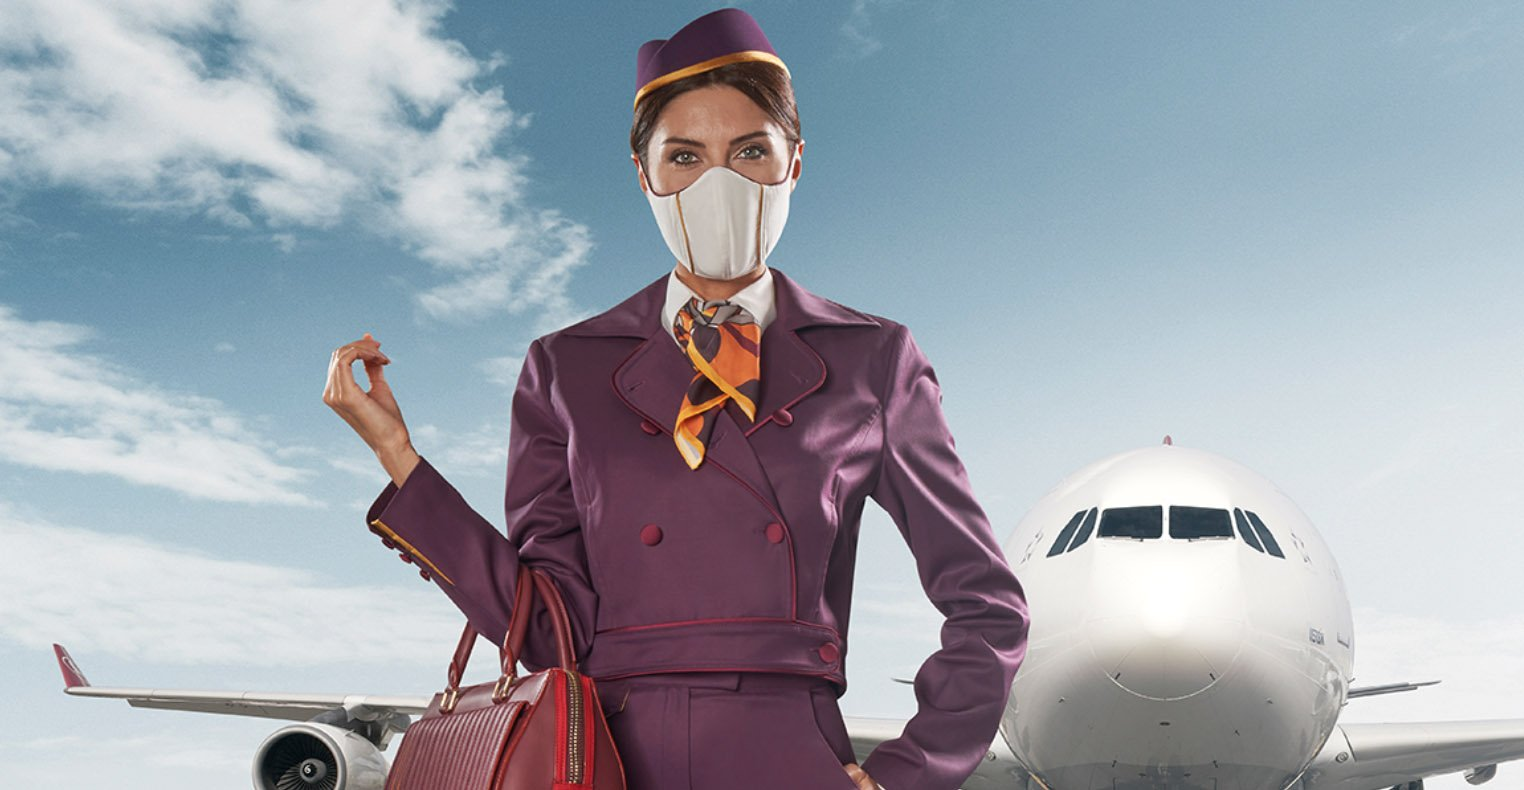 Silver-Embedded Flight Crew Uniforms Protect Against Bacteria and Viruses